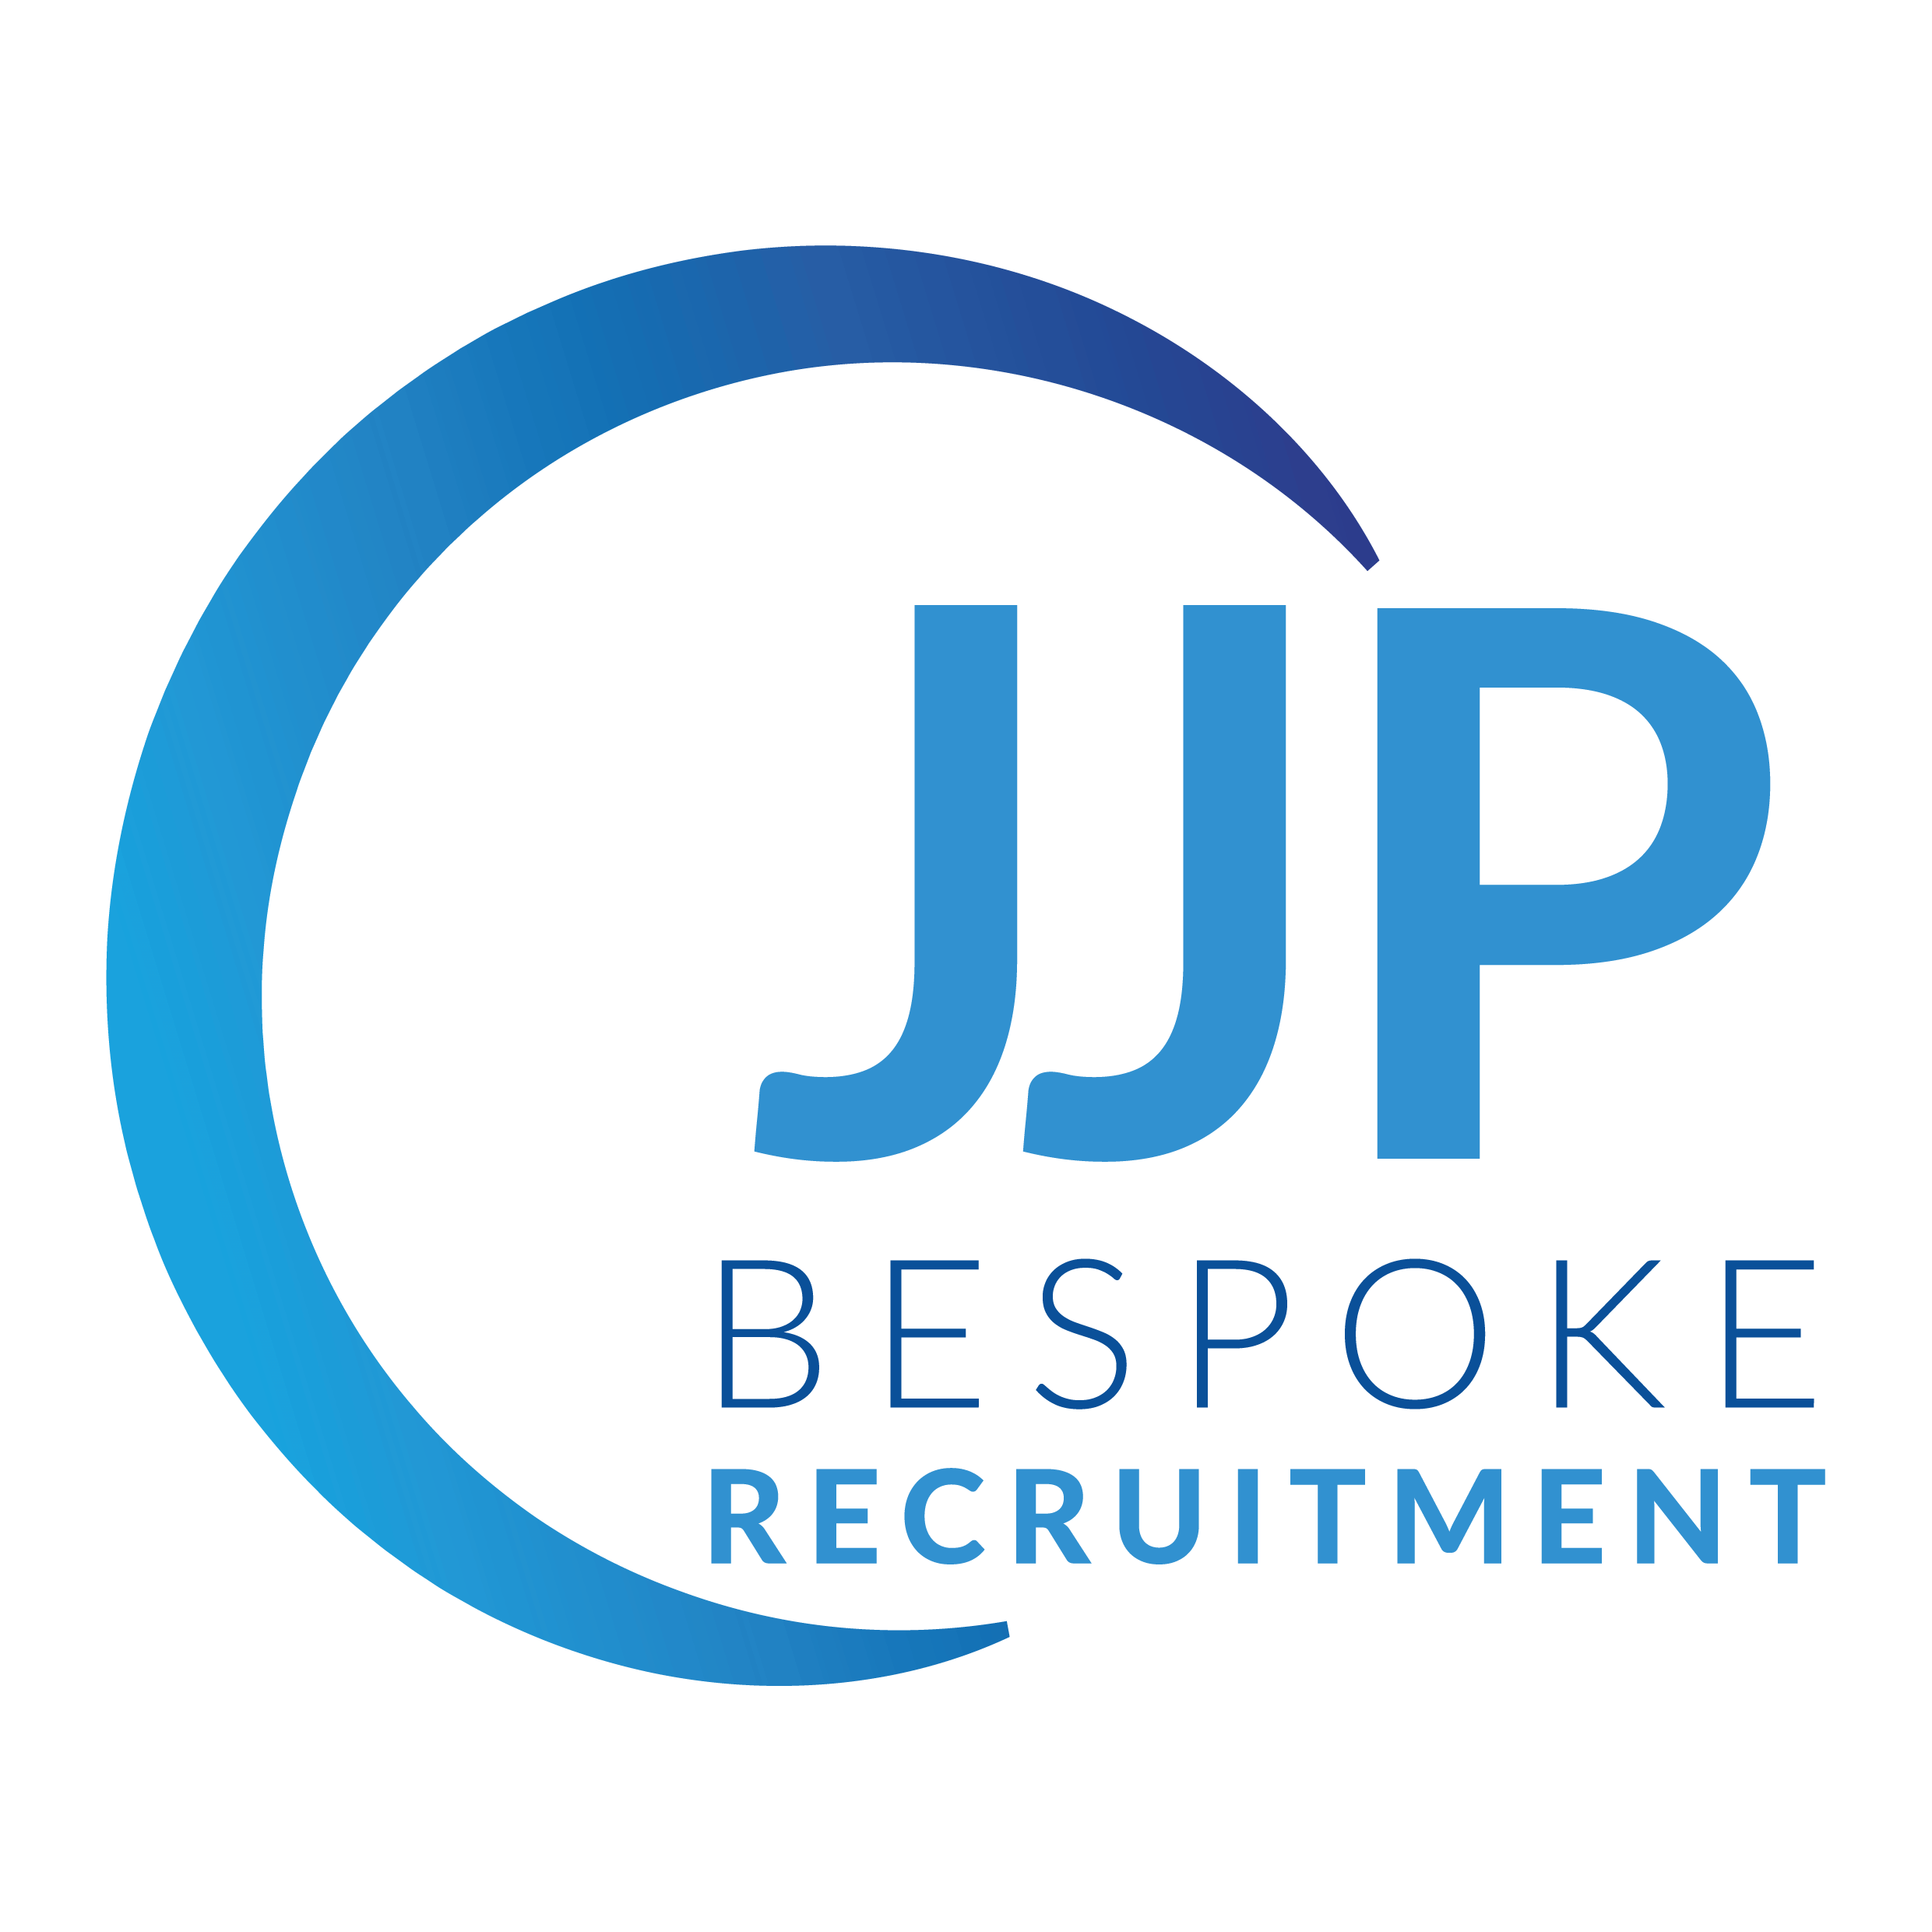 JJP Bespoke Recruitment